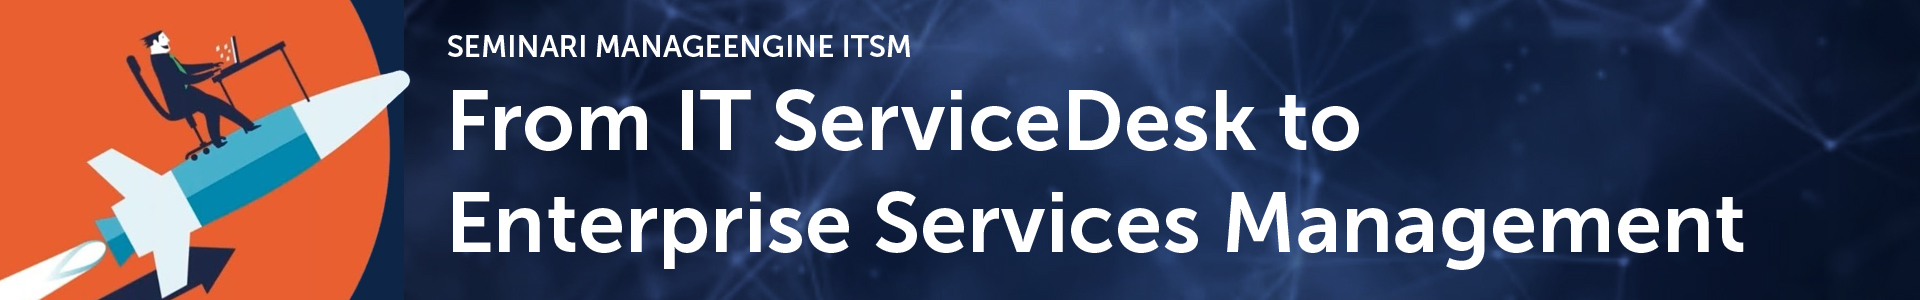 From IT ServiceDesk to Enterprise Services Management